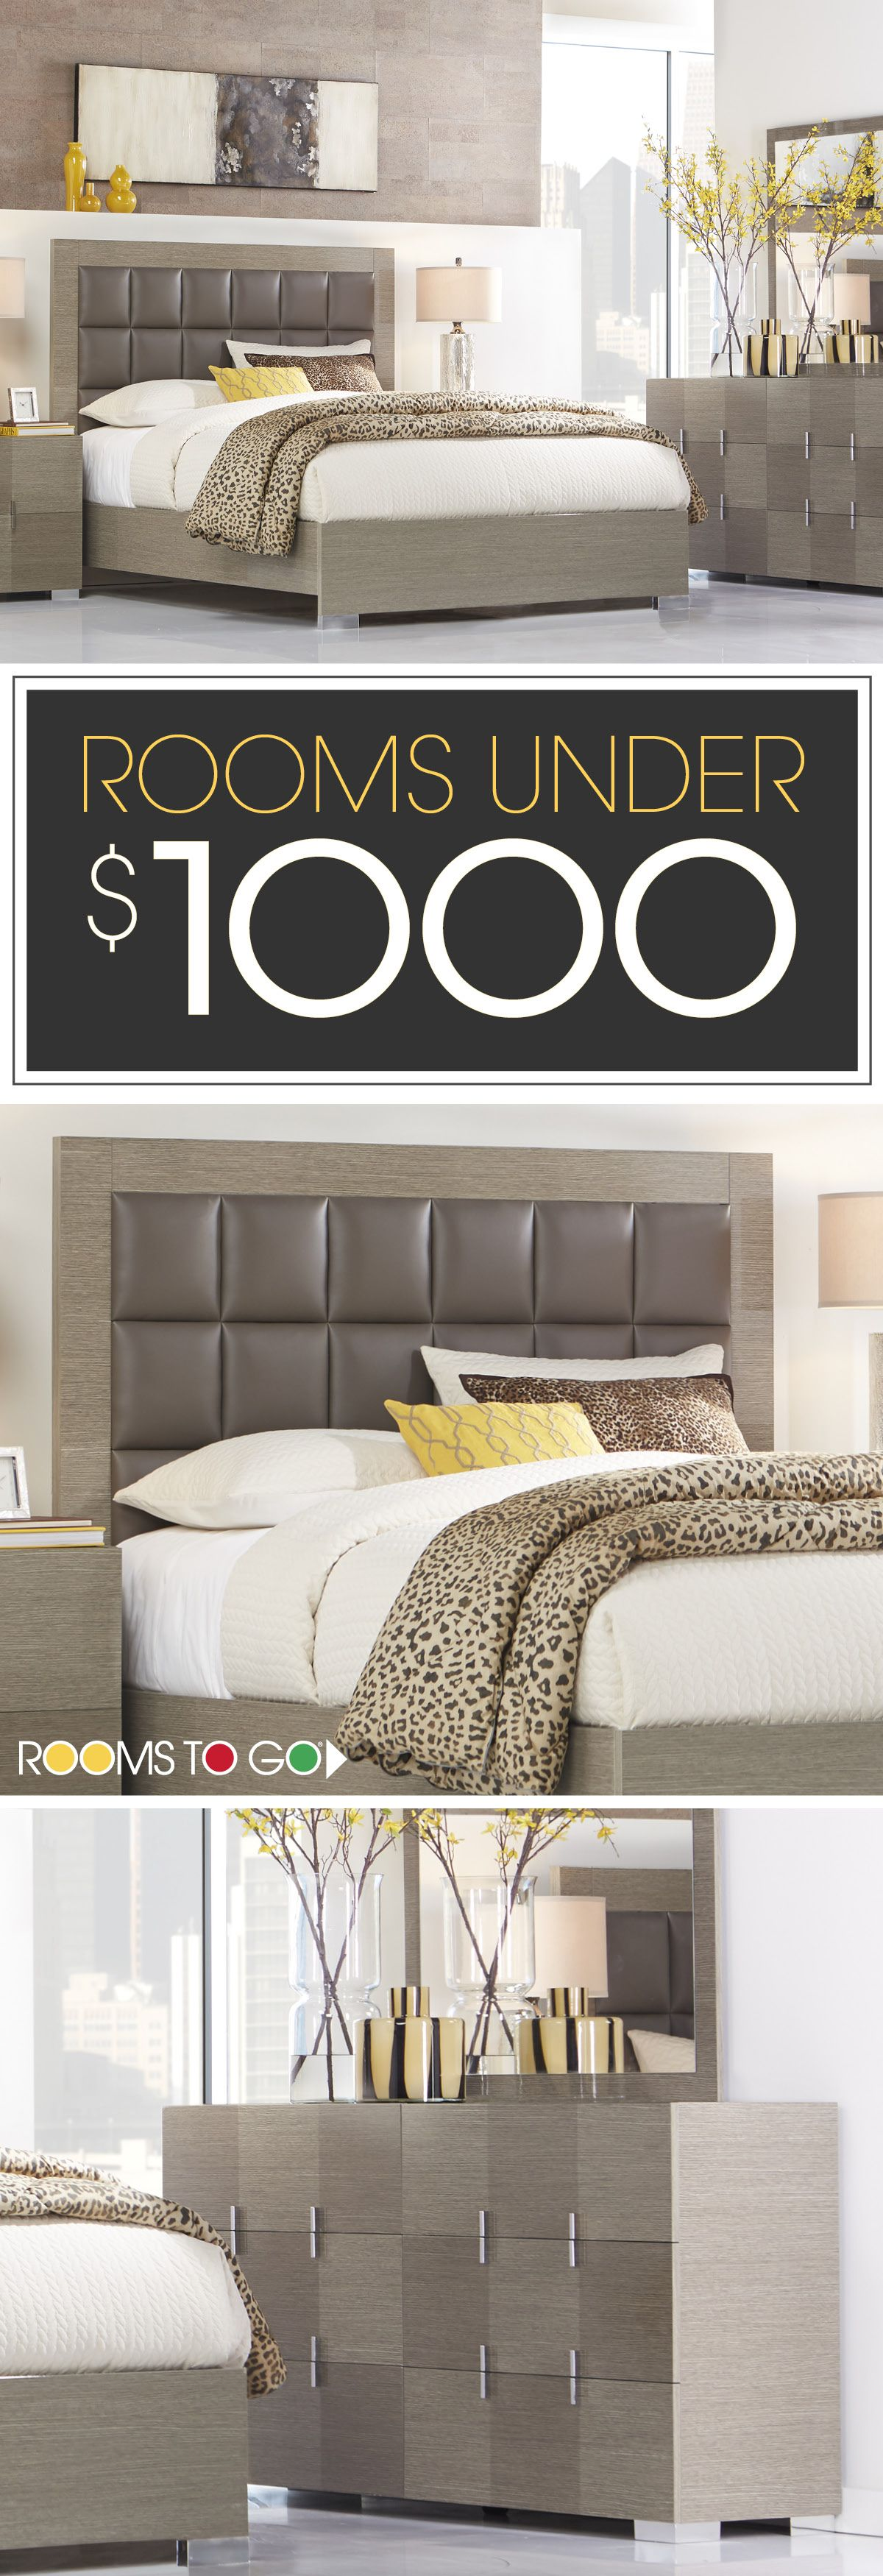 Visit Rooms To Go today, and save on our beautiful living